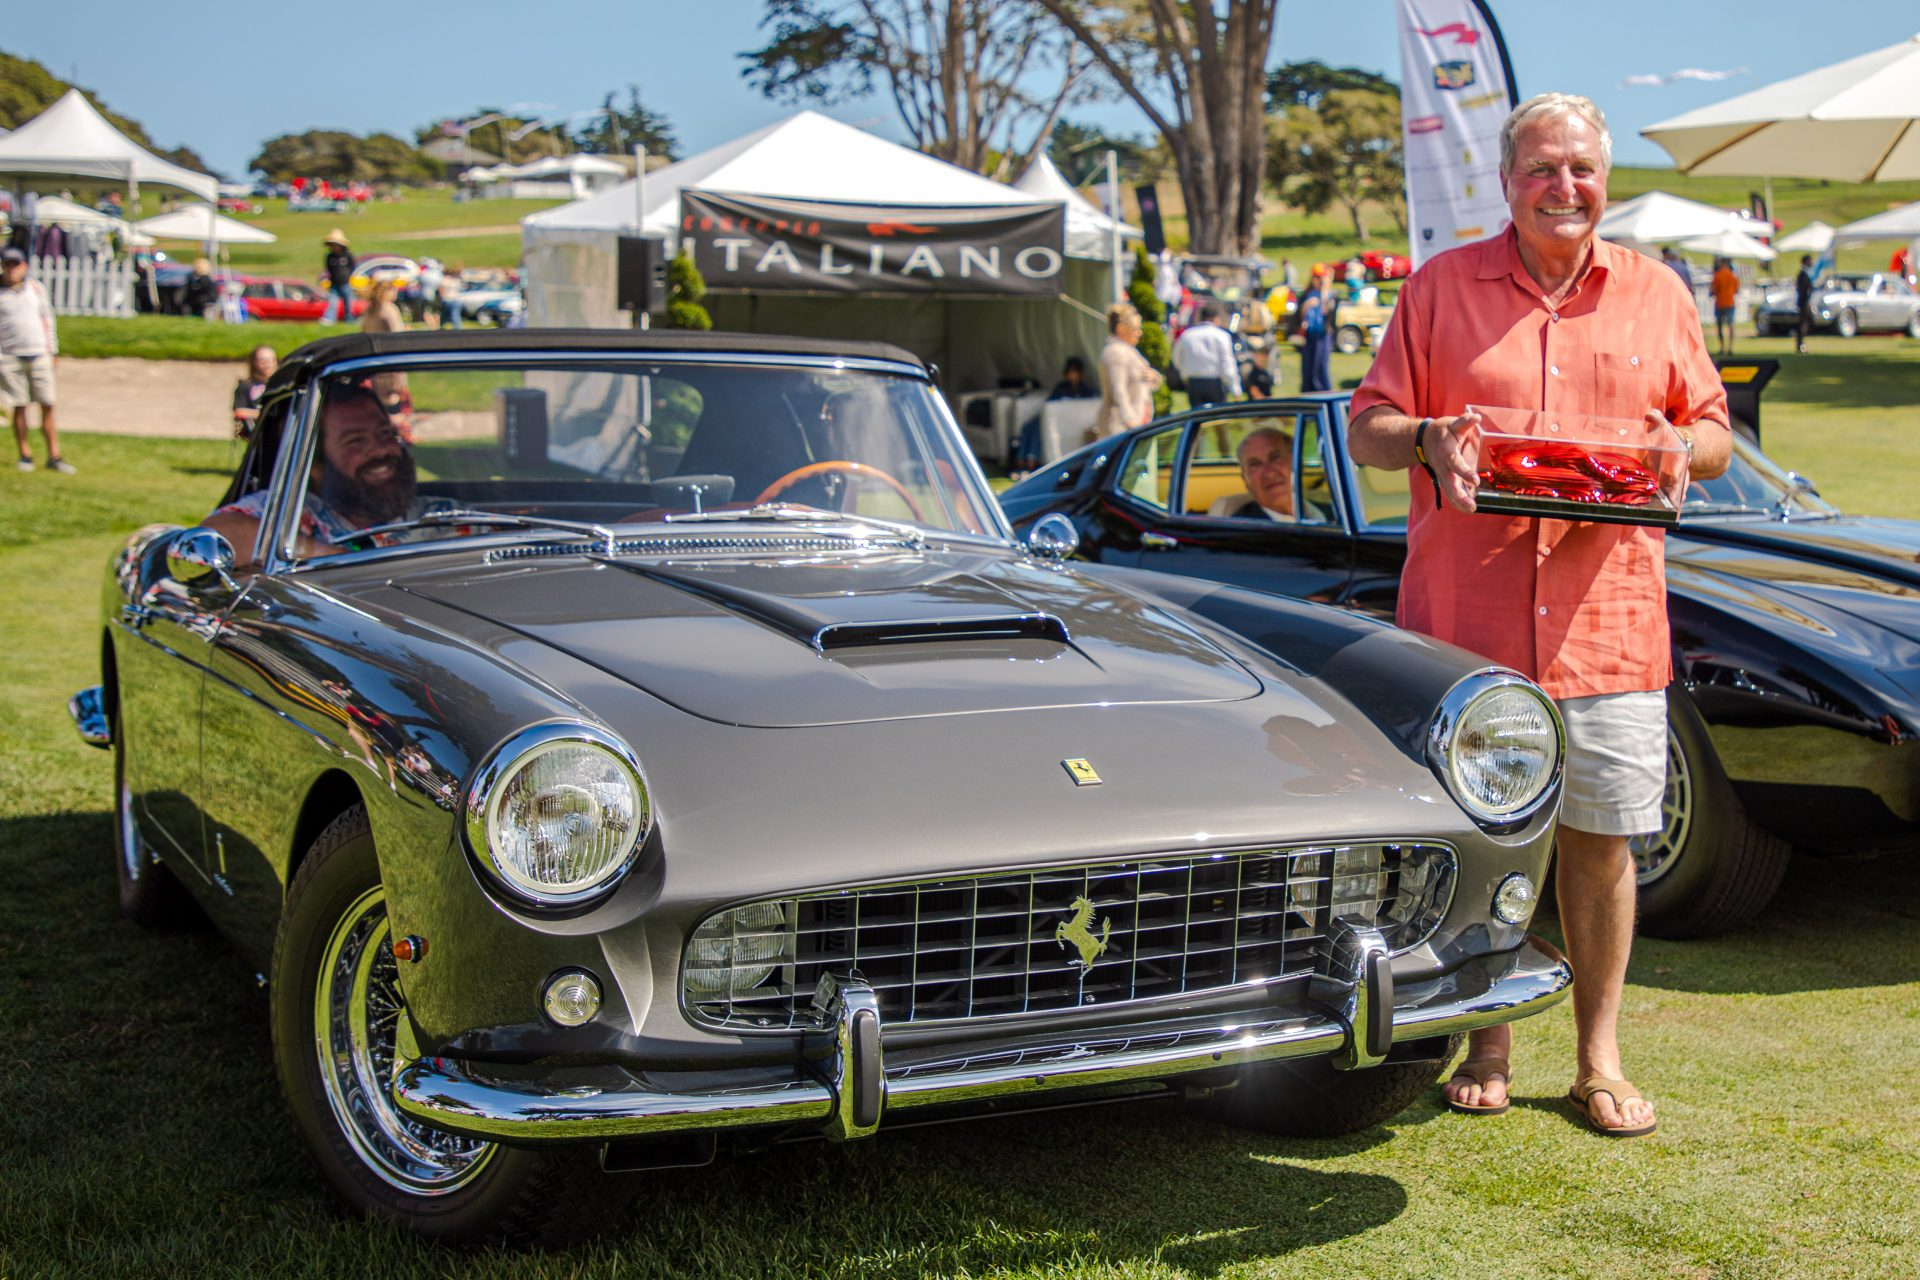 1st place Best in Show: 1960 Ferrari 250 GT Cabriolet owned by Ron Corradini from Newport Beach, CA